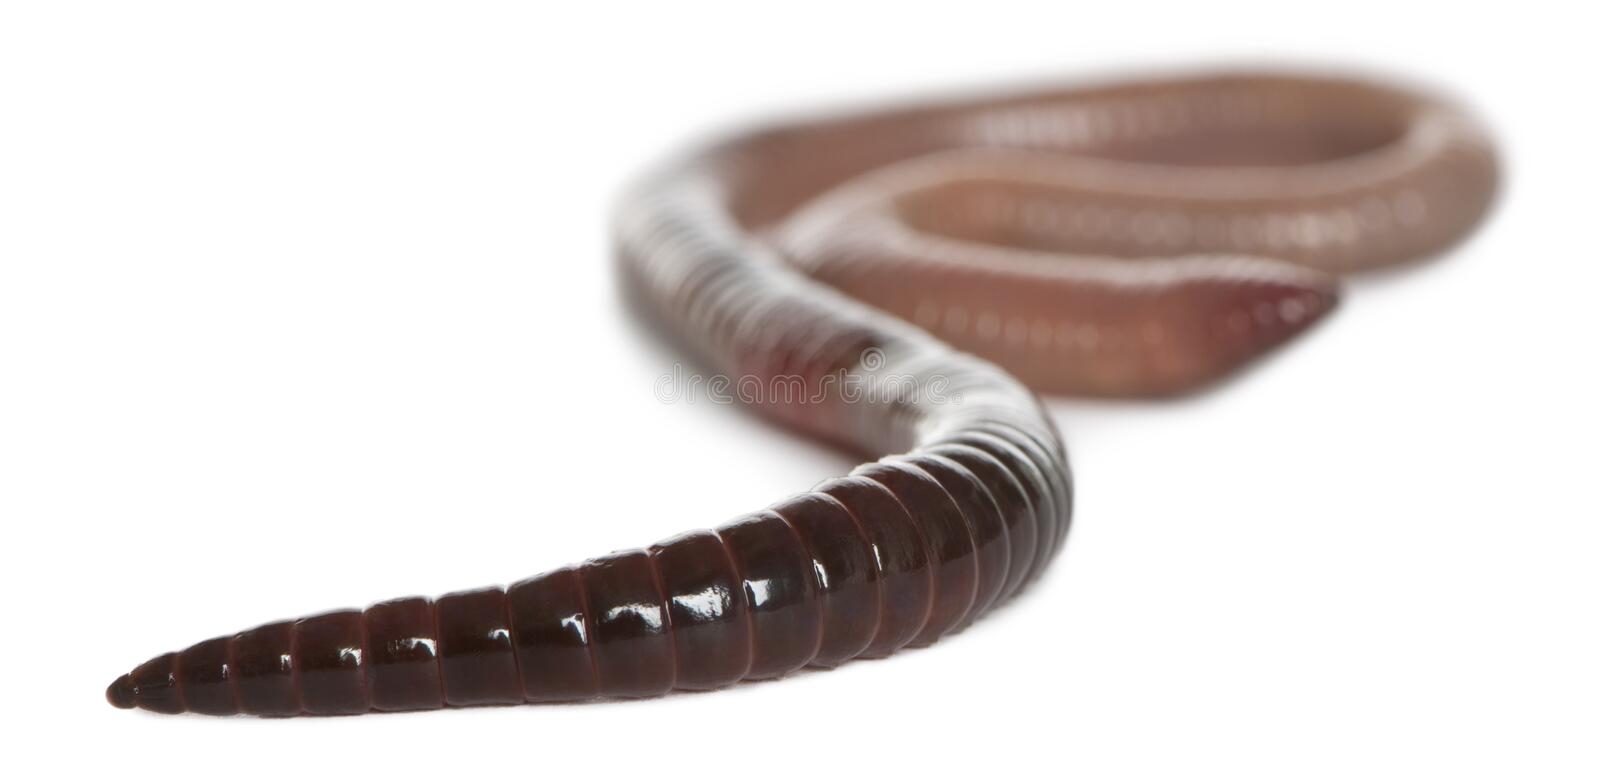 Earthworm, Lumbricus terrestris. In front of white background royalty free stock photo